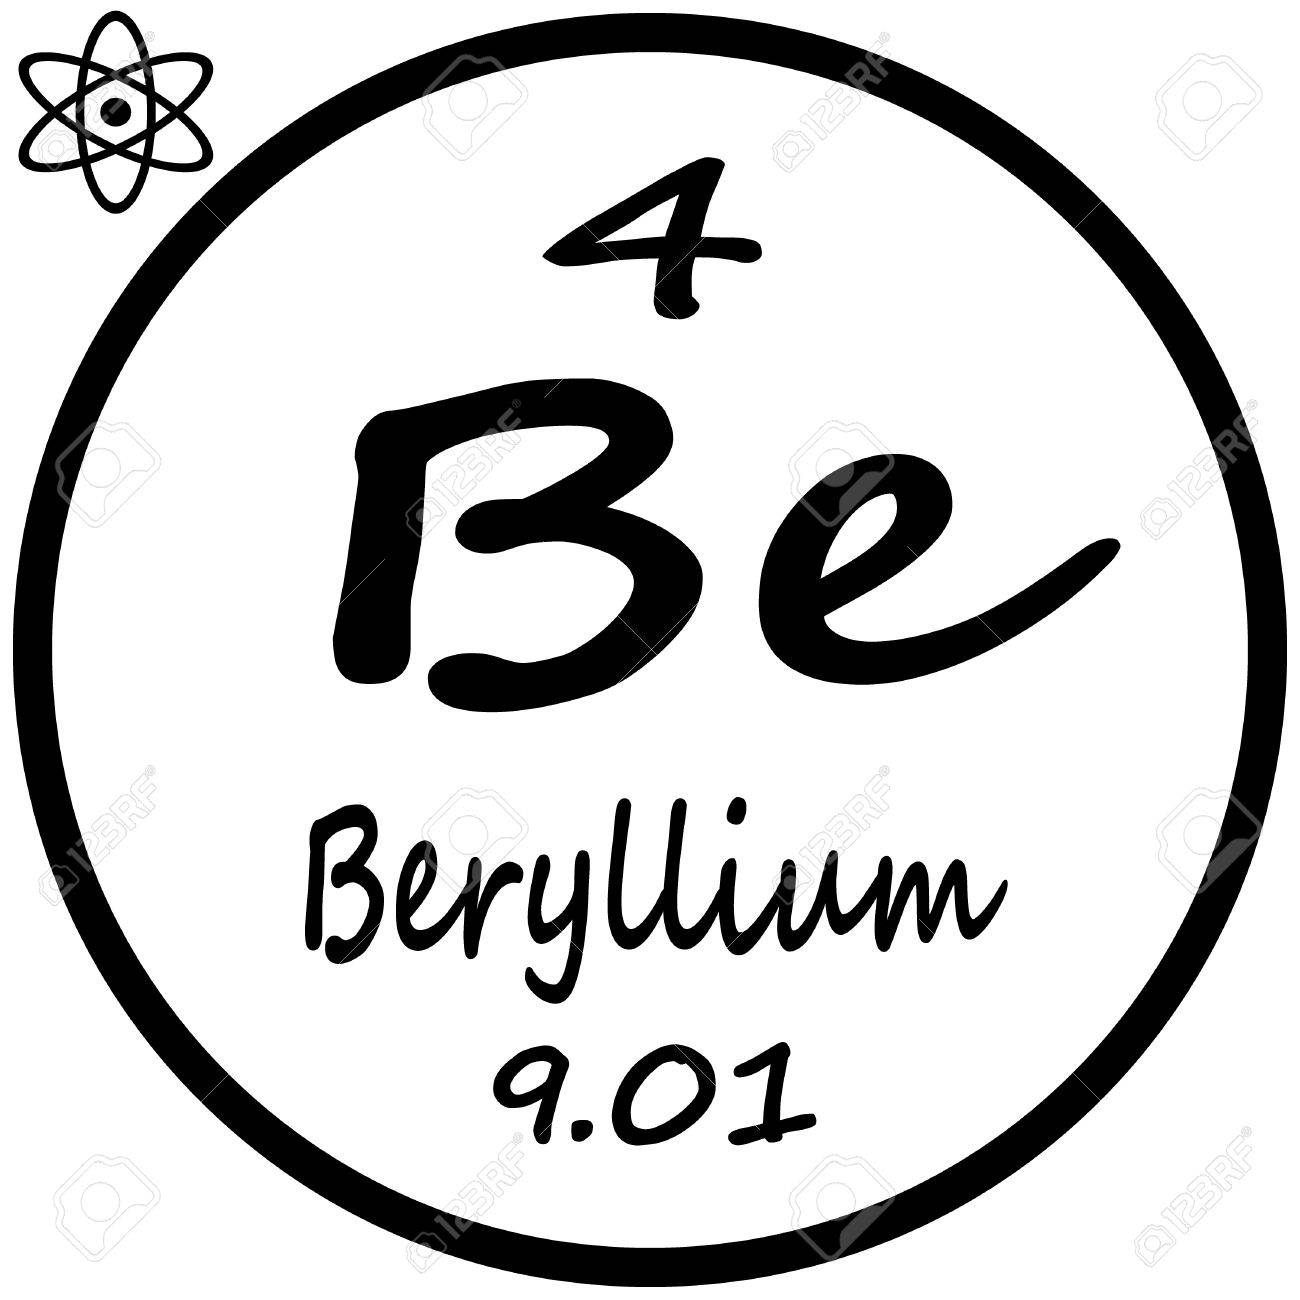 Periodic table of elements beryllium royalty free cliparts periodic table of elements beryllium stock vector 53482391 urtaz Choice Image